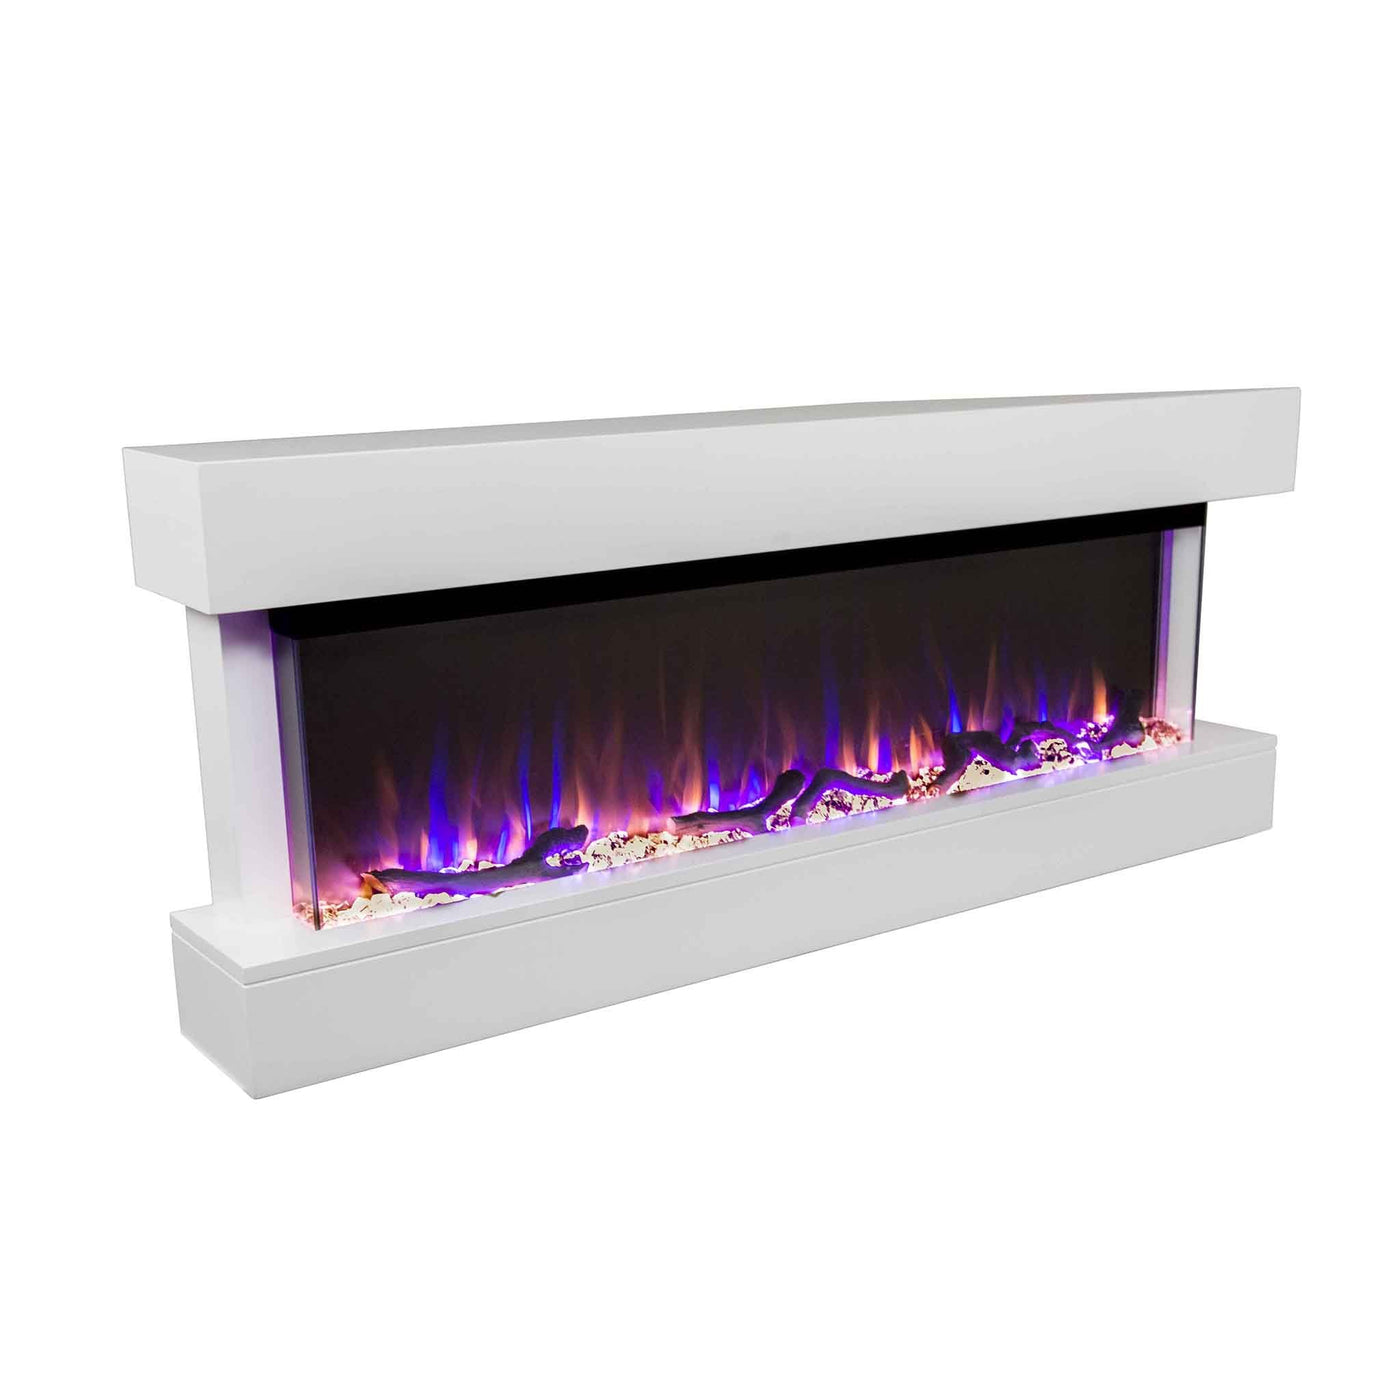 Touchstone Chesmont 50 80033 50 Wall Mount Electric Fireplace